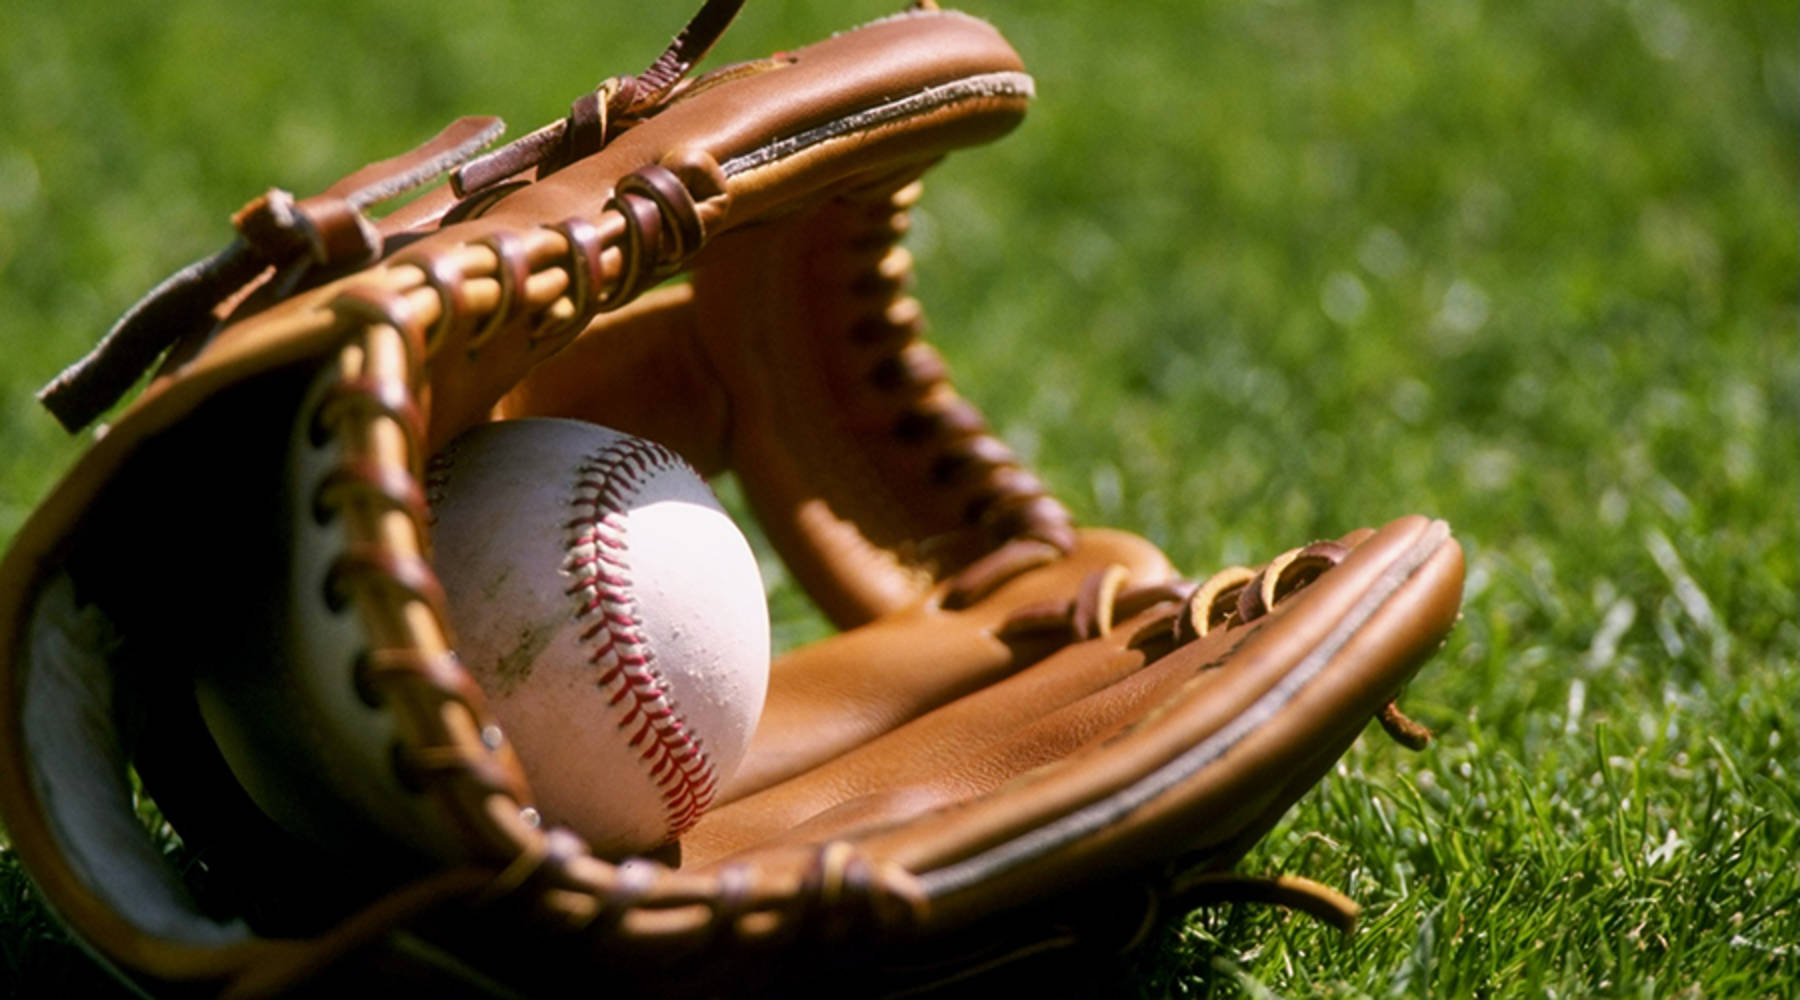 For some minor league baseball players, wages can seem like